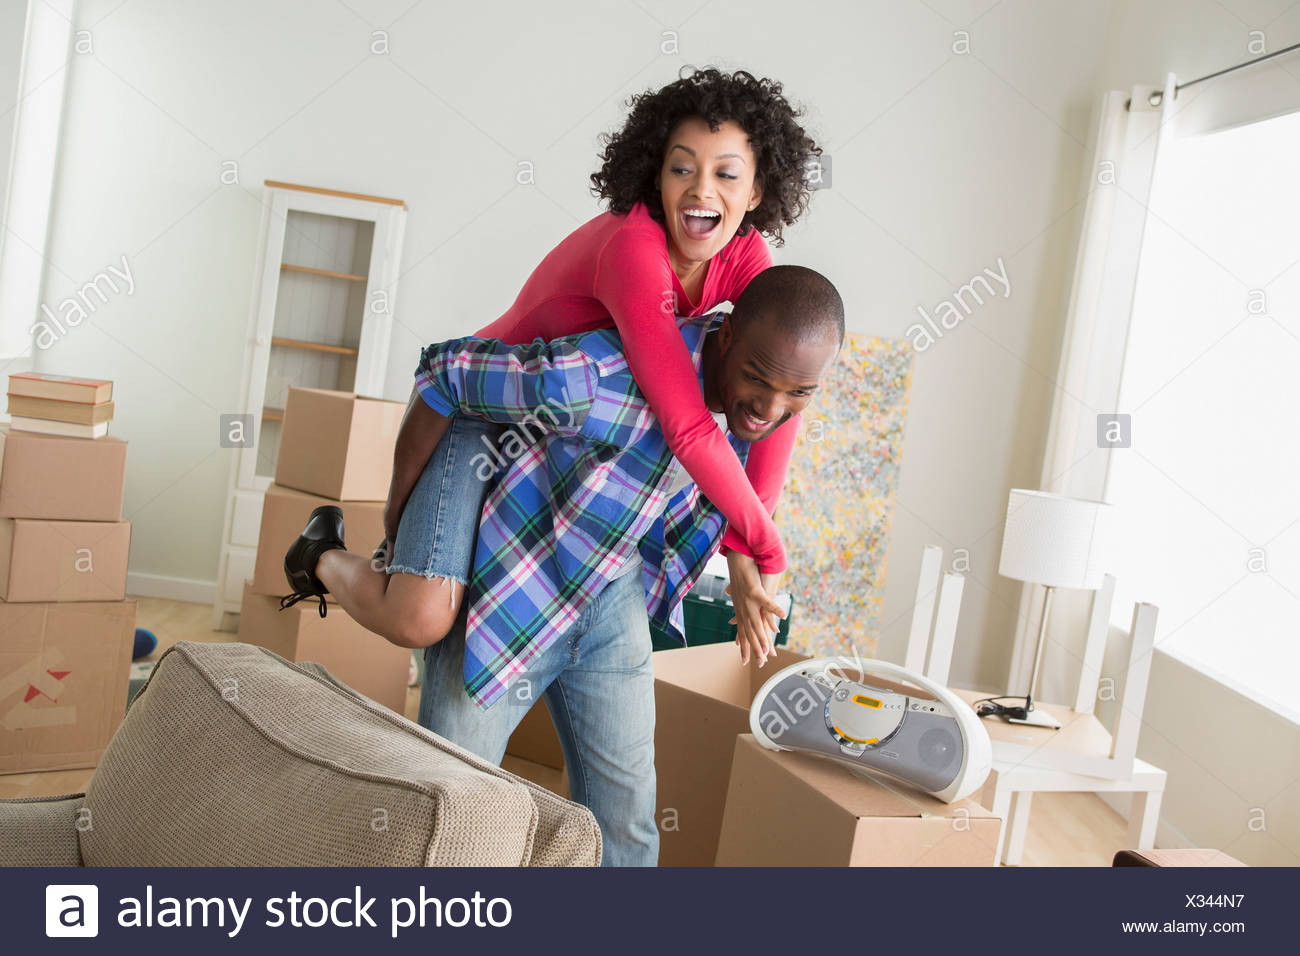 Couple in new home, man giving woman piggyback Photo Stock